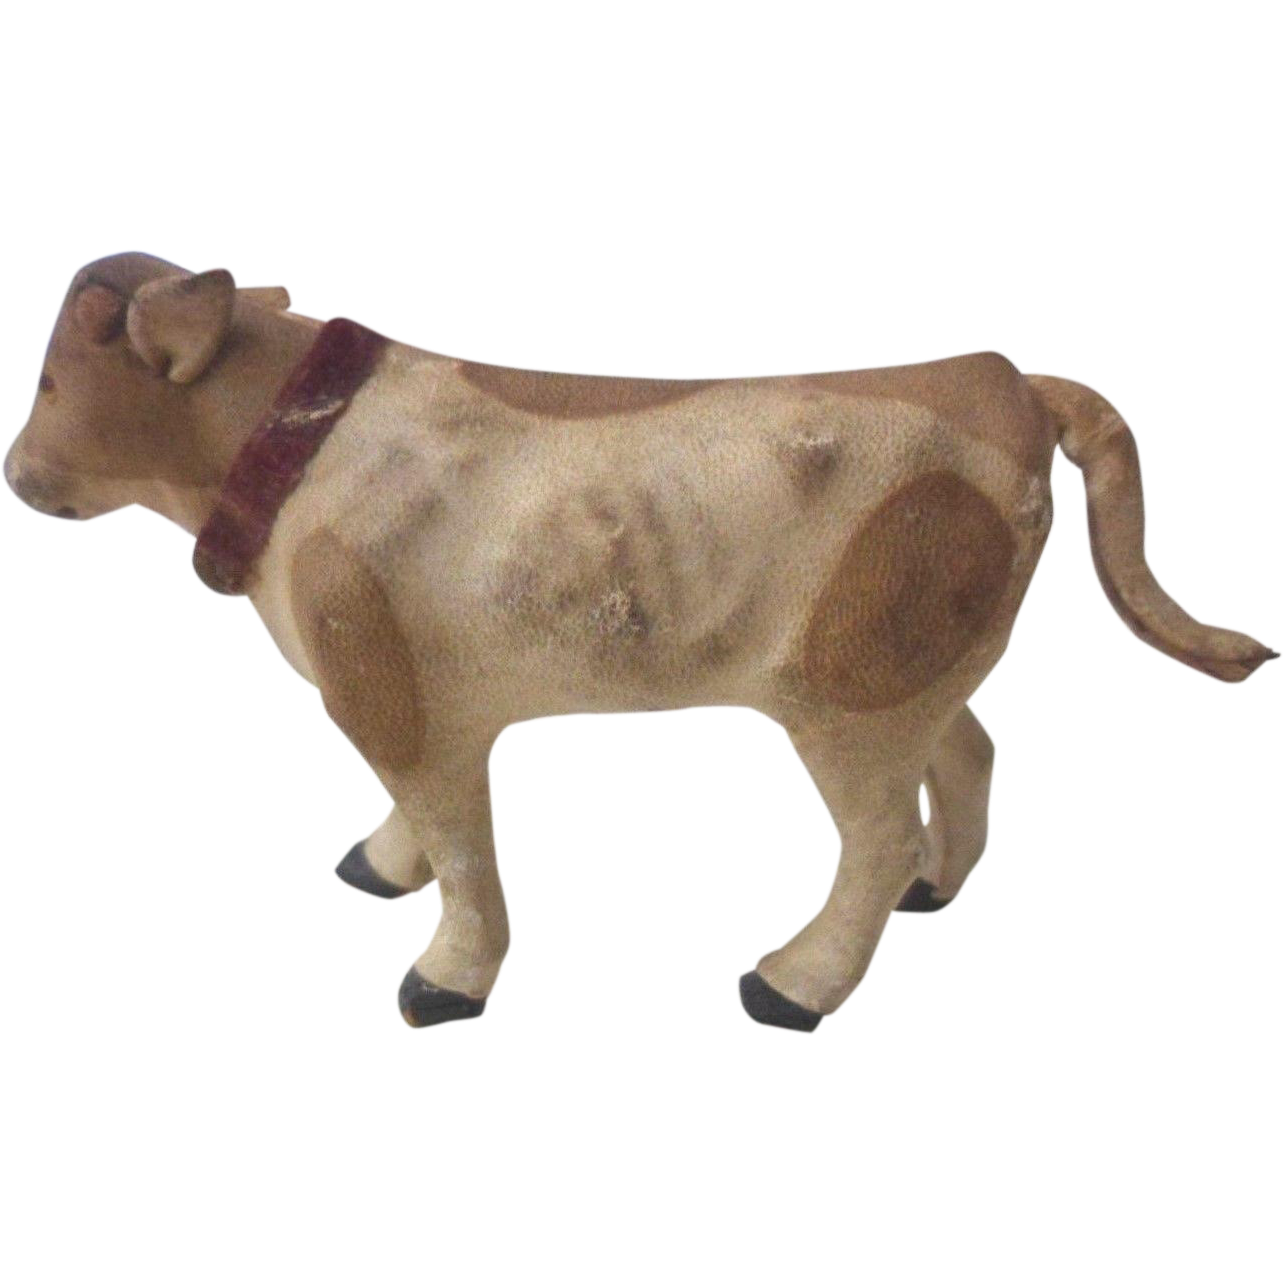 Miniature Putz Leather Covered Toy Cow from antiquefreak